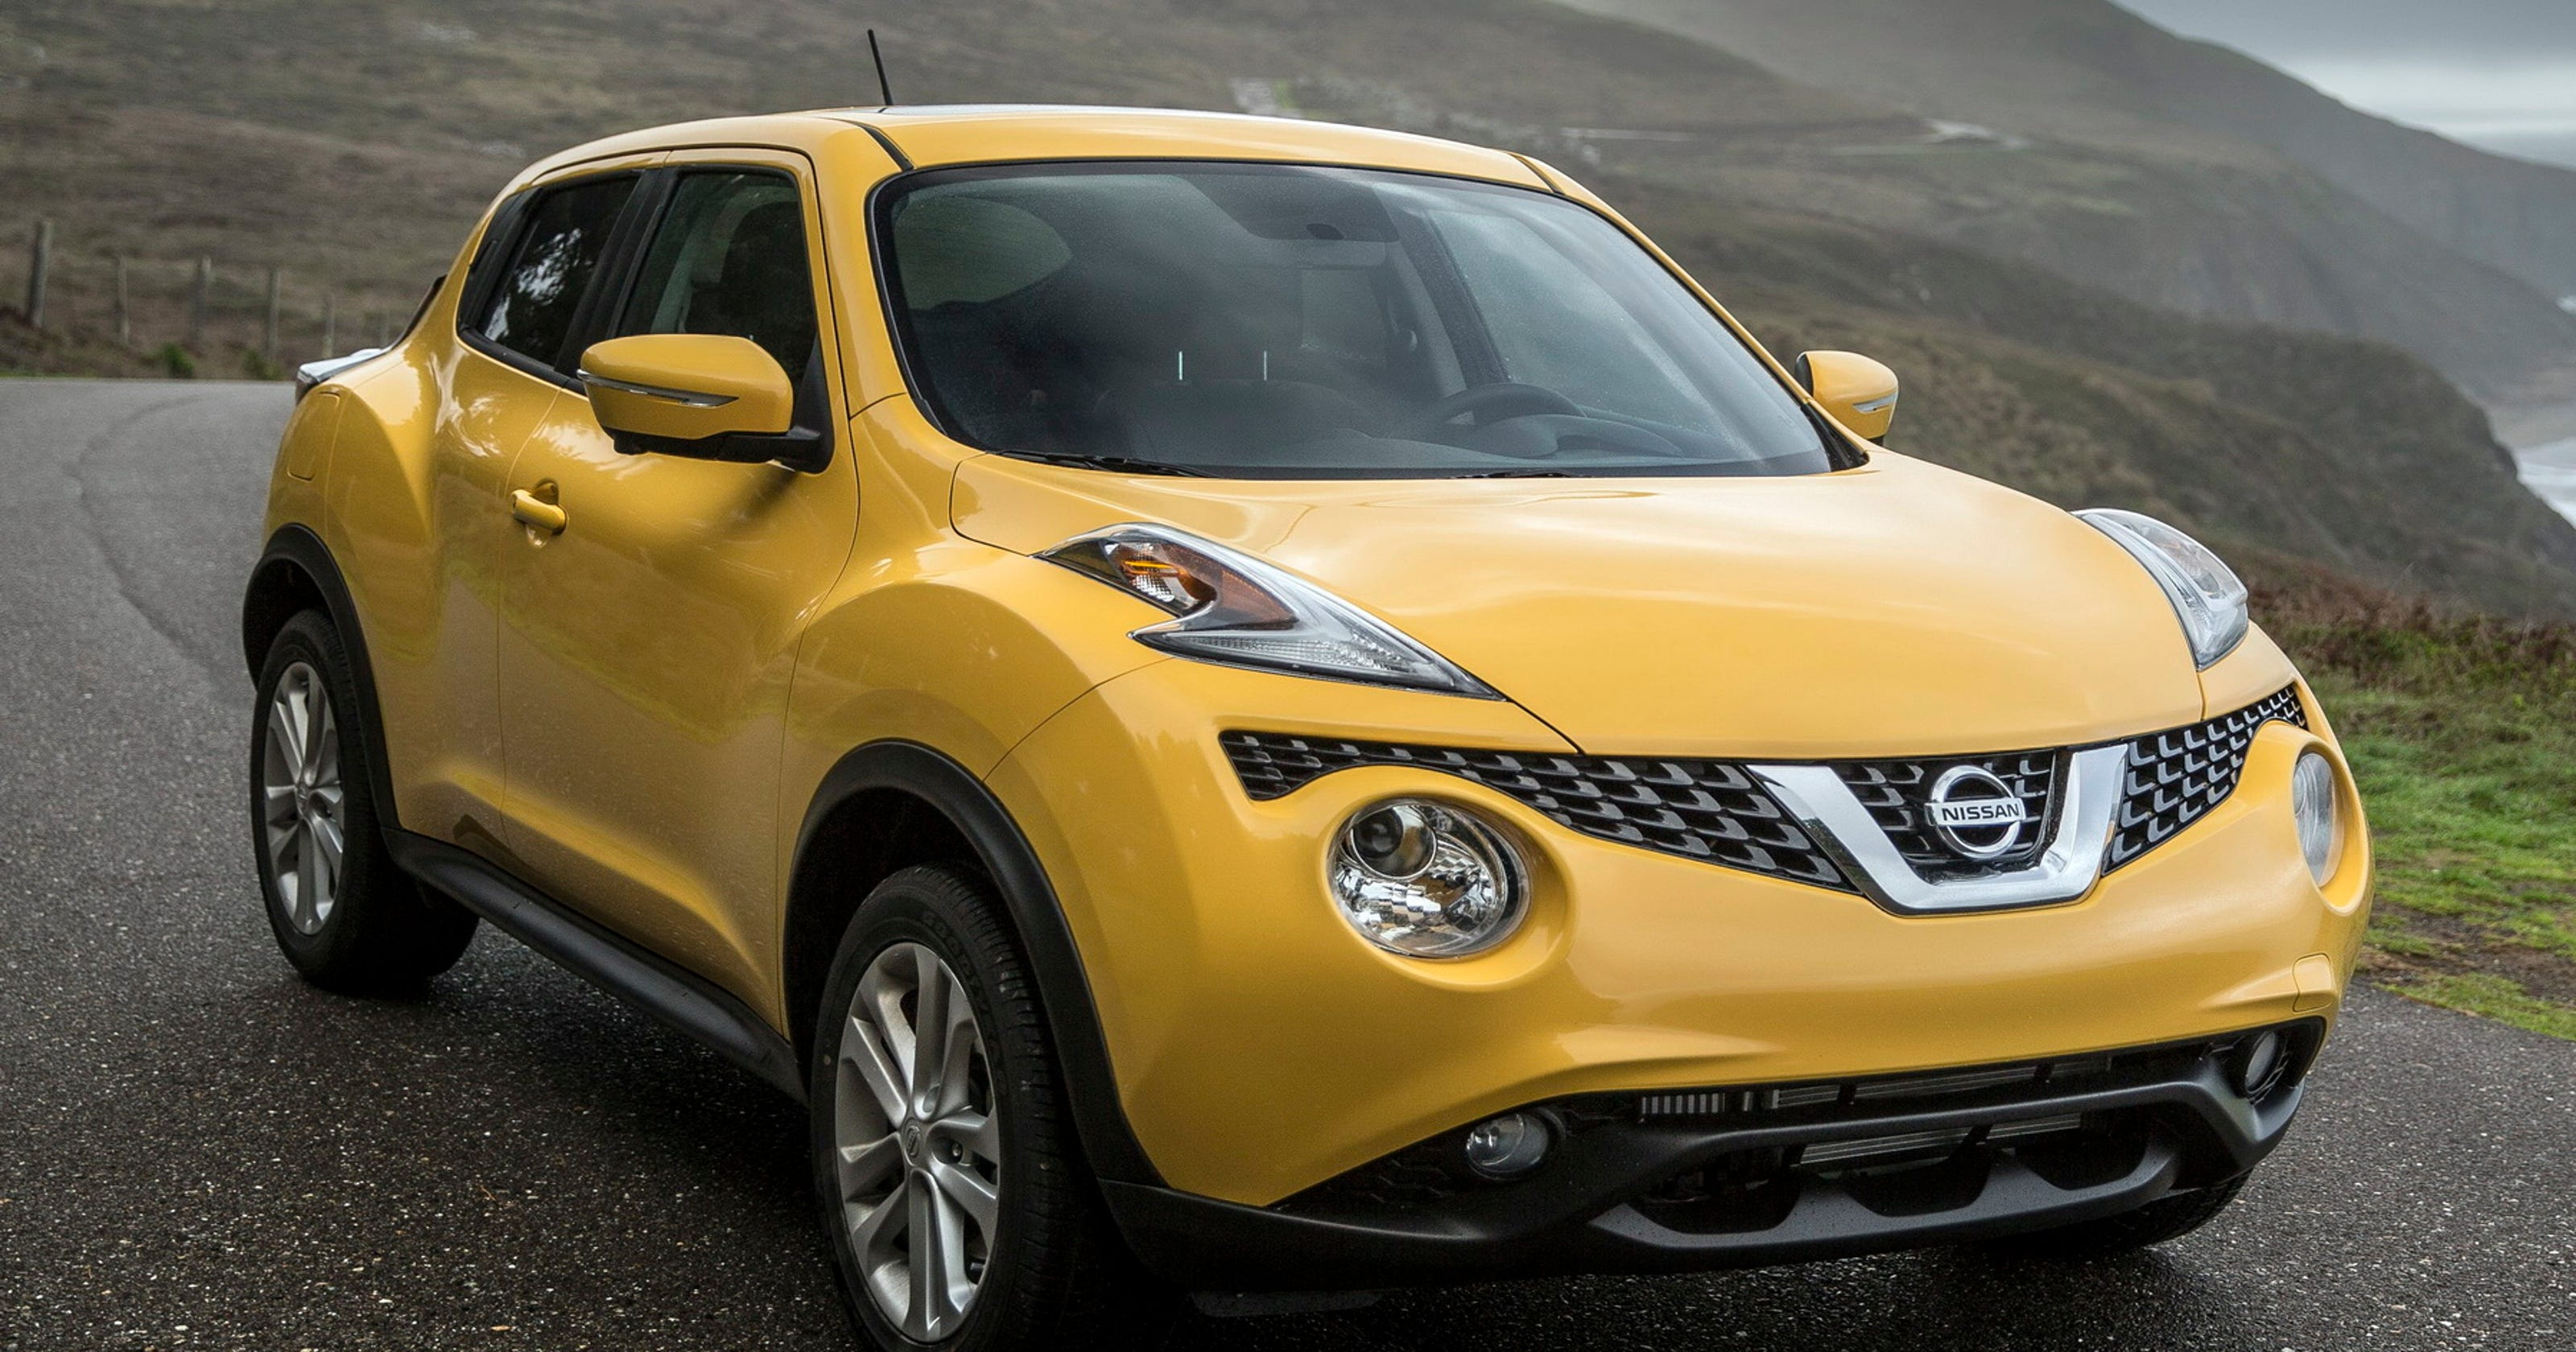 Urban Versatility & Fun-to-Drive Performance: 2015 Nissan Juke Sport Cross